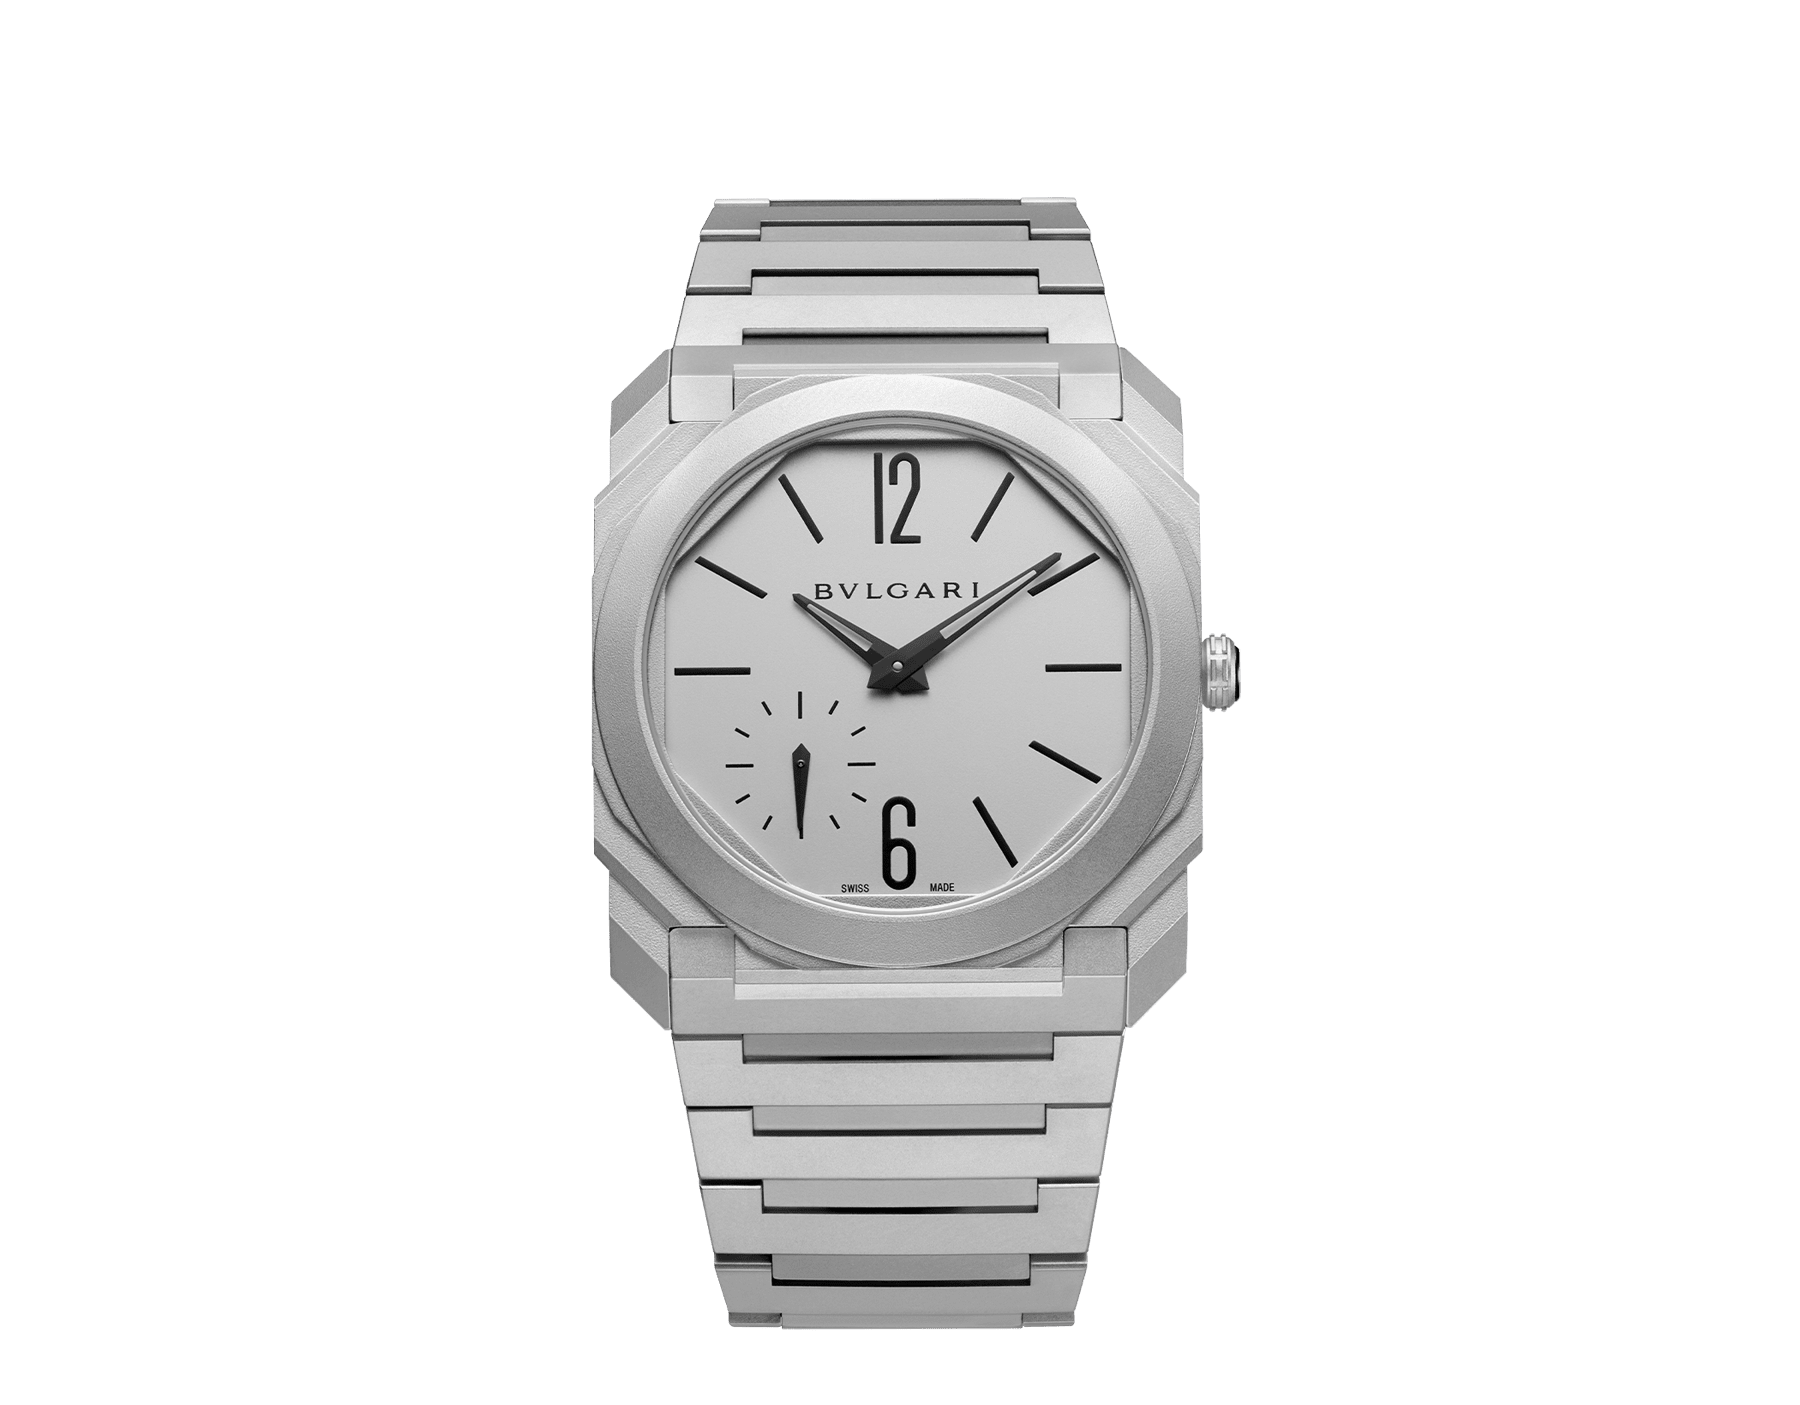 Octo Finissimo Automatic watch with mechanical manufacture movement, automatic winding, platinum microrotor, small seconds, extra-thin stainless steel case, dial and bracelet 103011 image 1